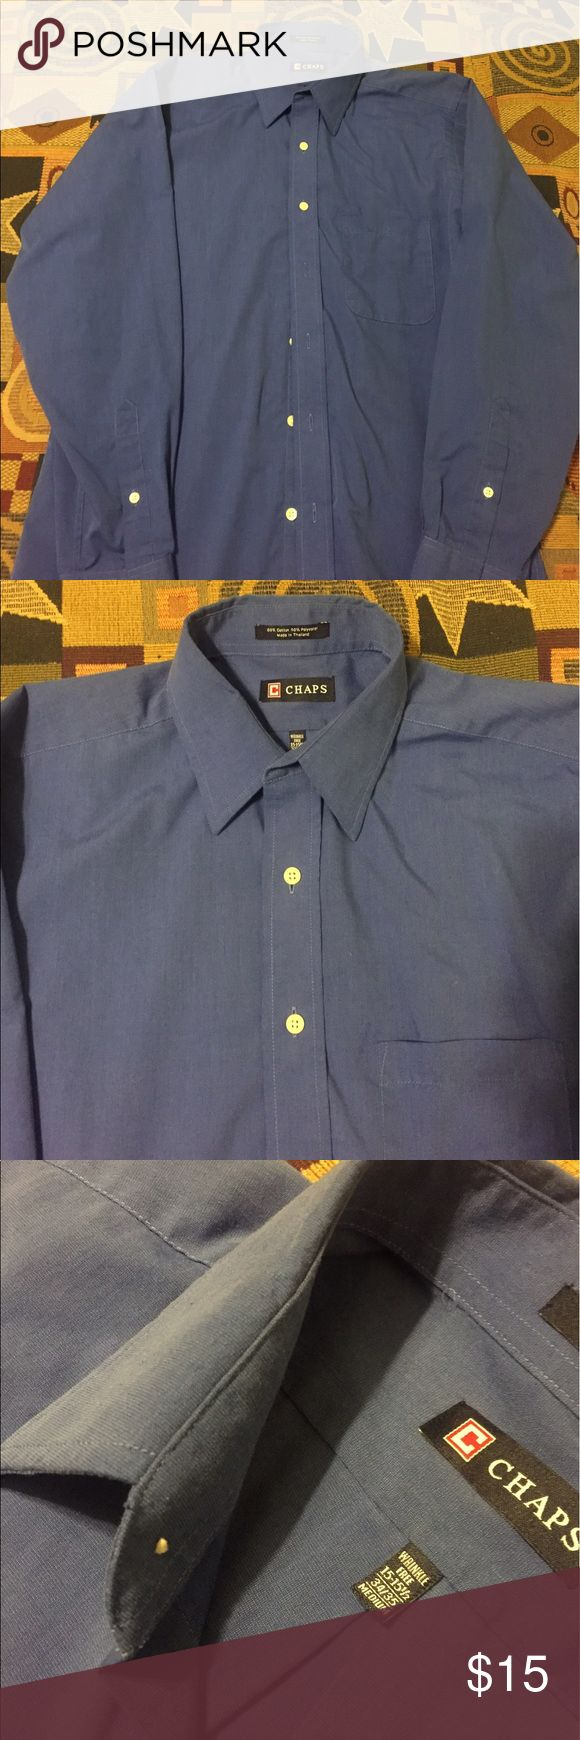 Blue Chaps Button Up Shirt Royal Blue Button Up by Chaps. Shirt is in great Condition, I've only worn it a handful of times. No fading, no rips and all the buttons are still attached. Size 15.5. Open to Offers. Chaps Shirts